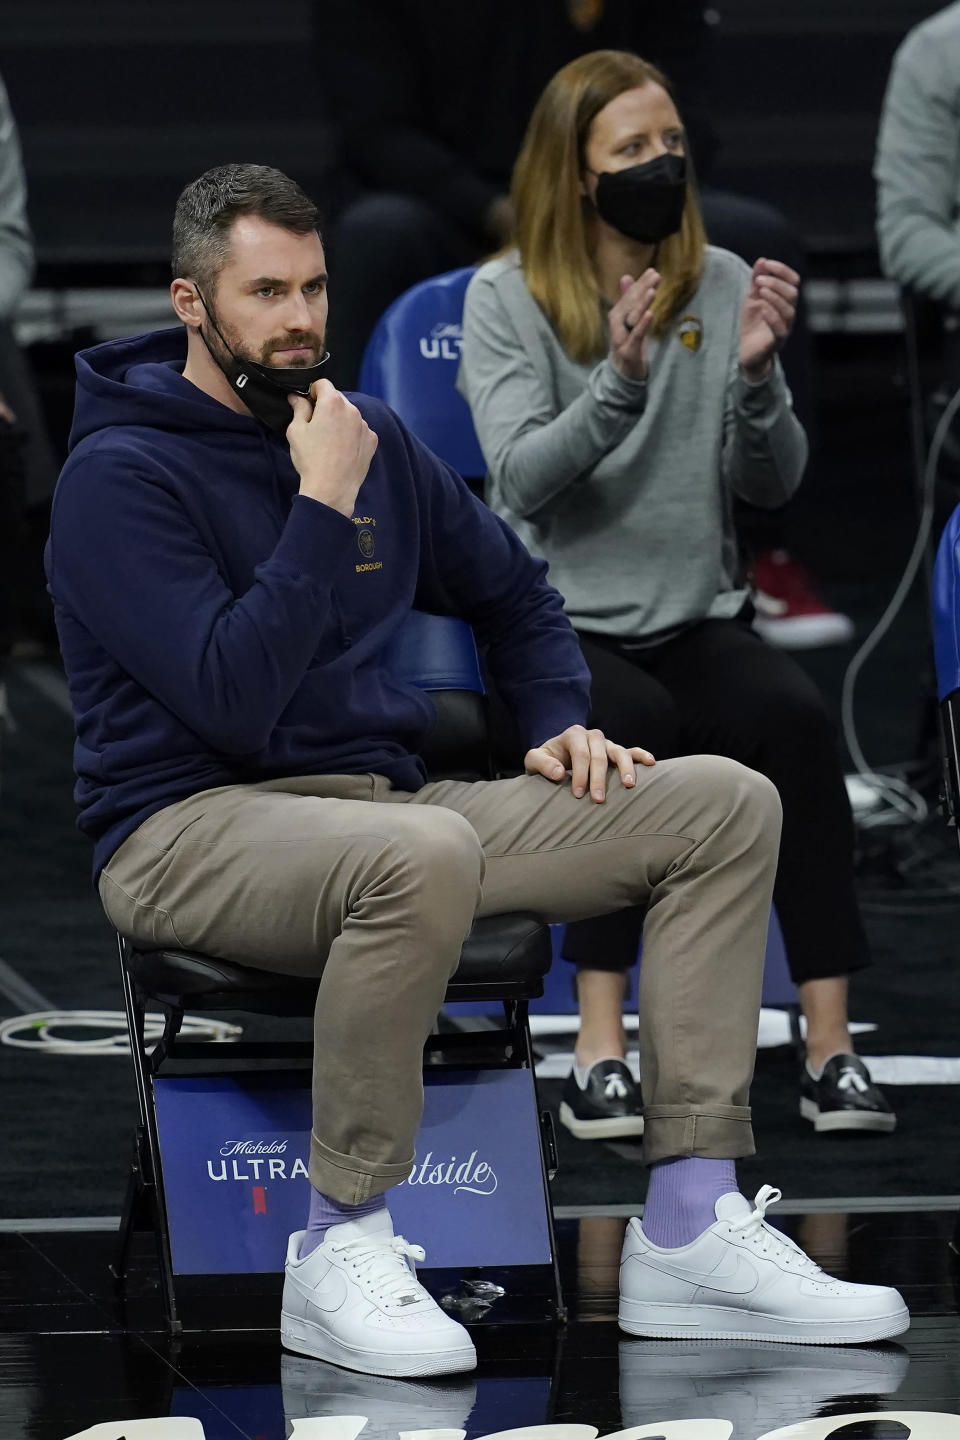 Injured Cleveland Cavaliers forward Kevin Love sits on the bench in front of assistant coach Lindsay Gottlieb during the second half of the team's NBA basketball game against the Sacramento Kings in Sacramento, Calif., Saturday, March 27, 2021. (AP Photo/Jeff Chiu)